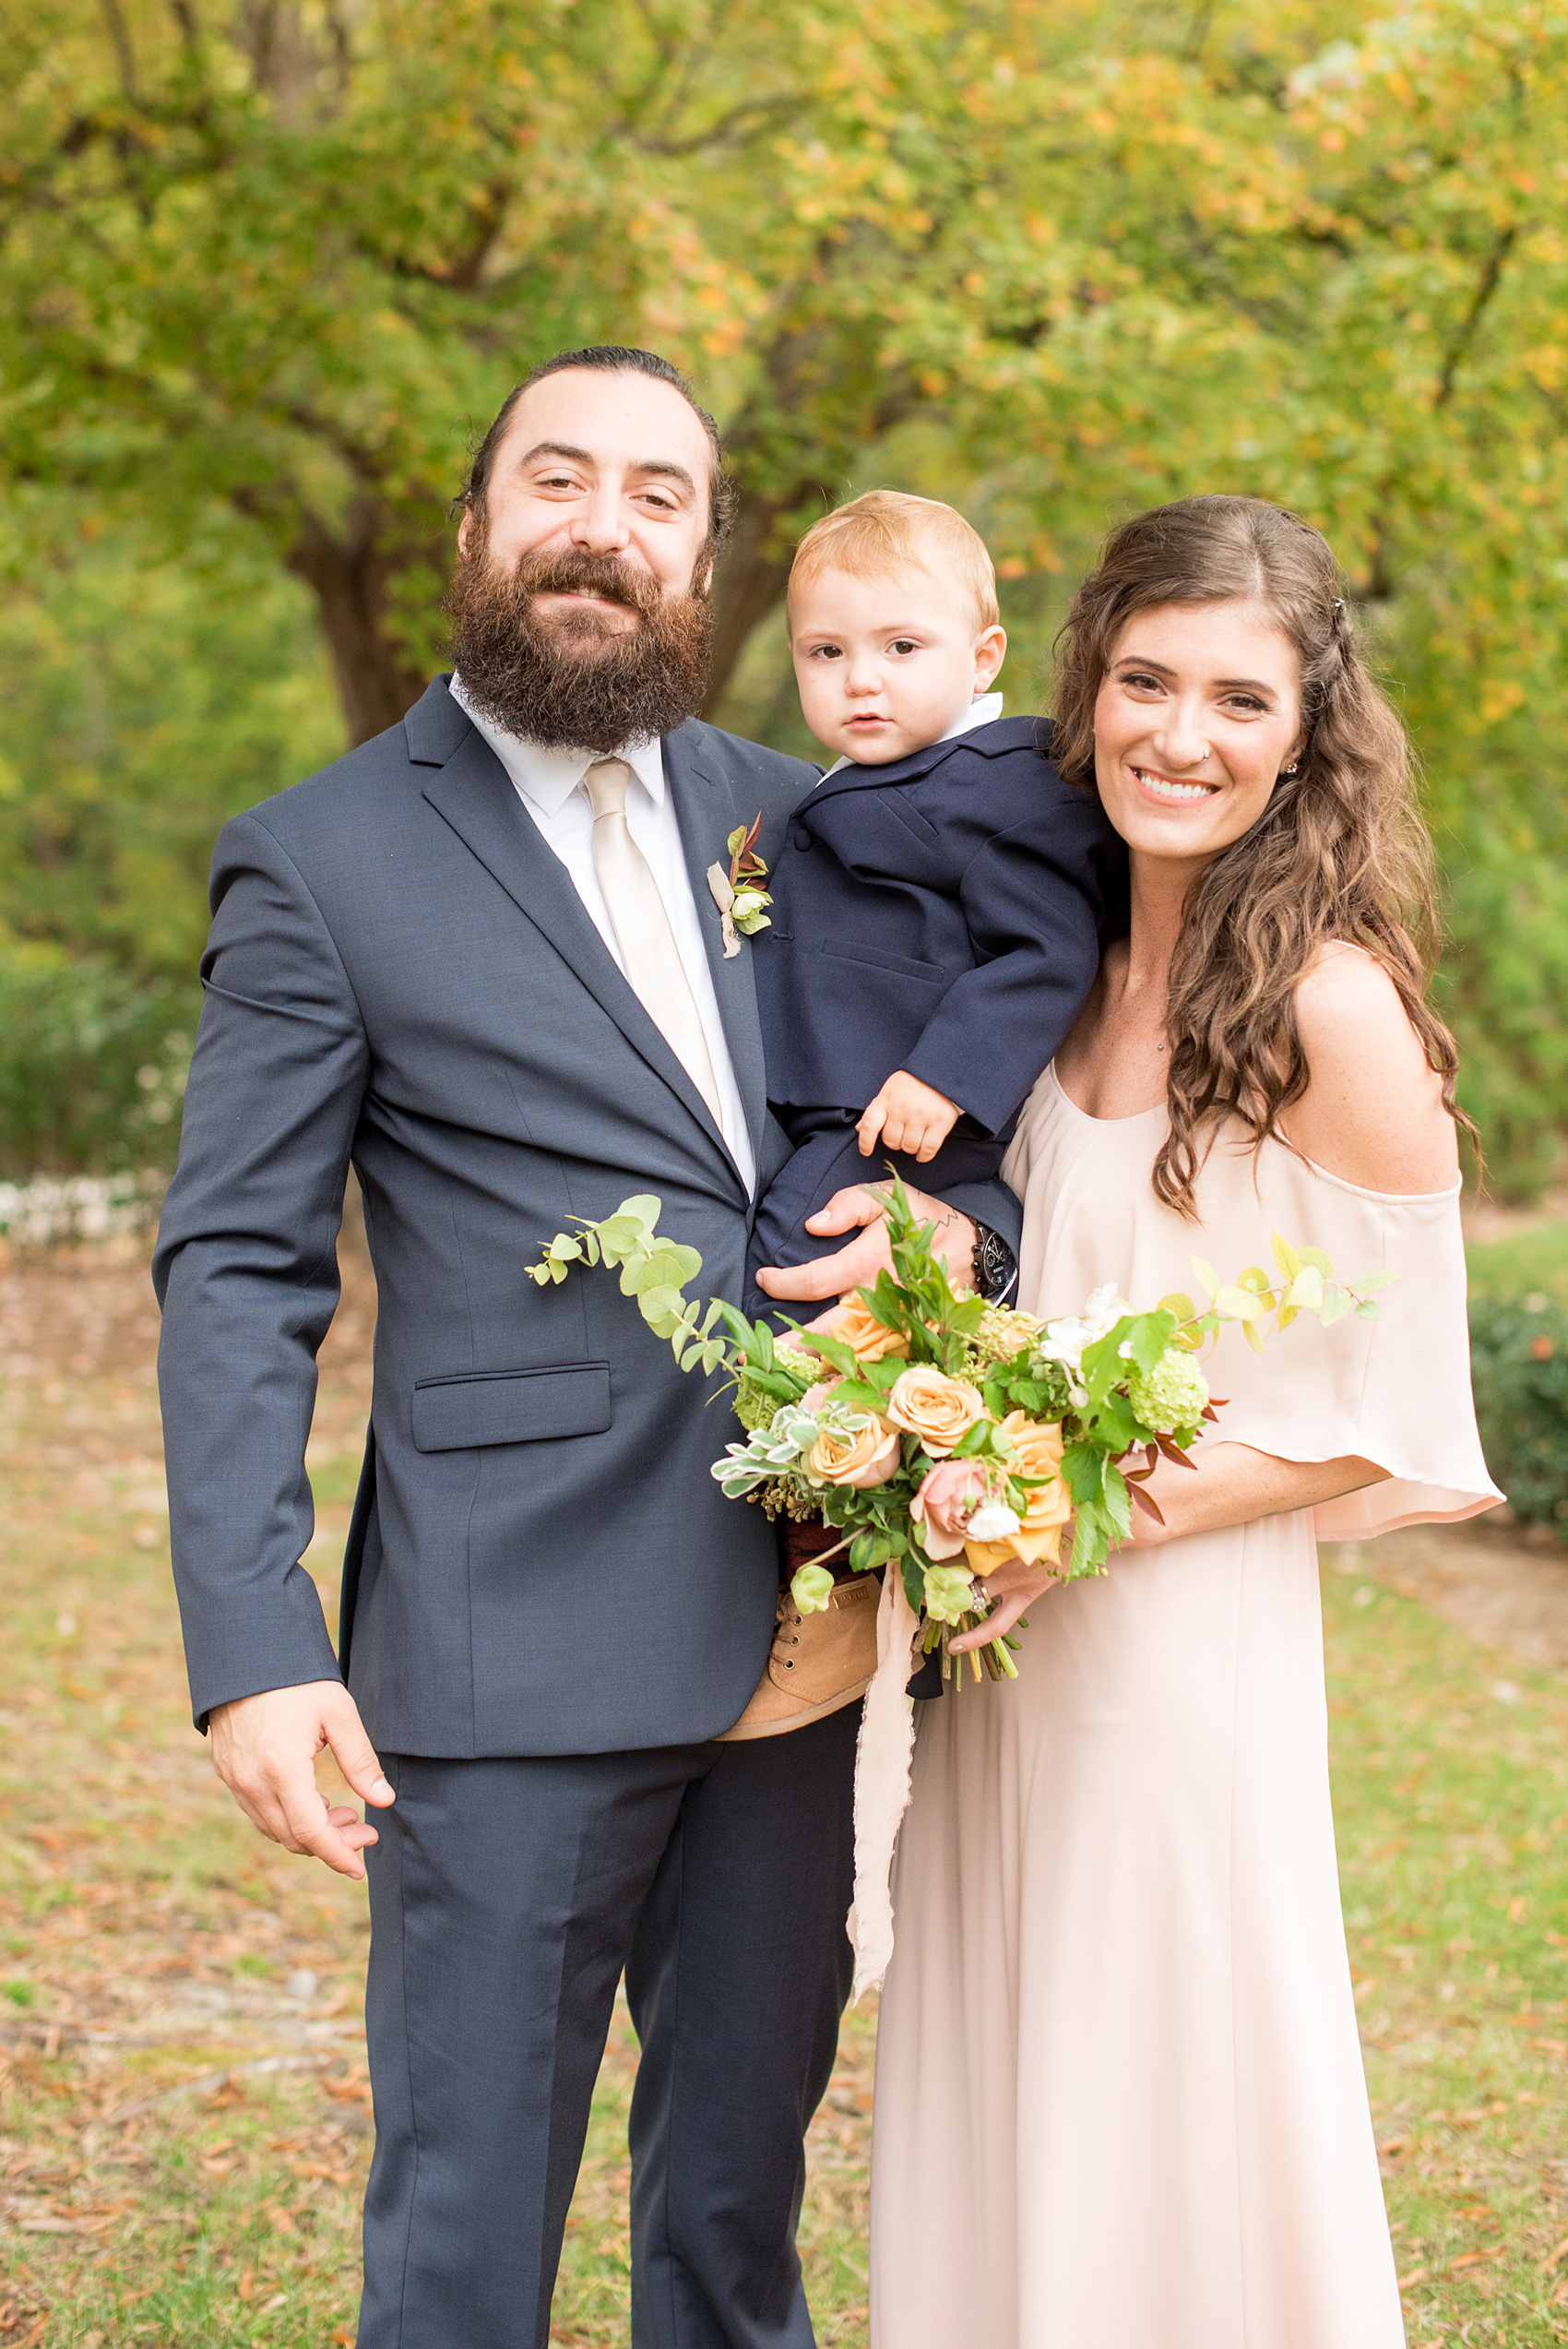 Mikkel Paige Photography photos from a wedding at Leslie-Alford Mims House in North Carolina. Picture of a groomsmen and bridesmaids, with their ring bearer toddler son, in navy linen suits and light pink gown.